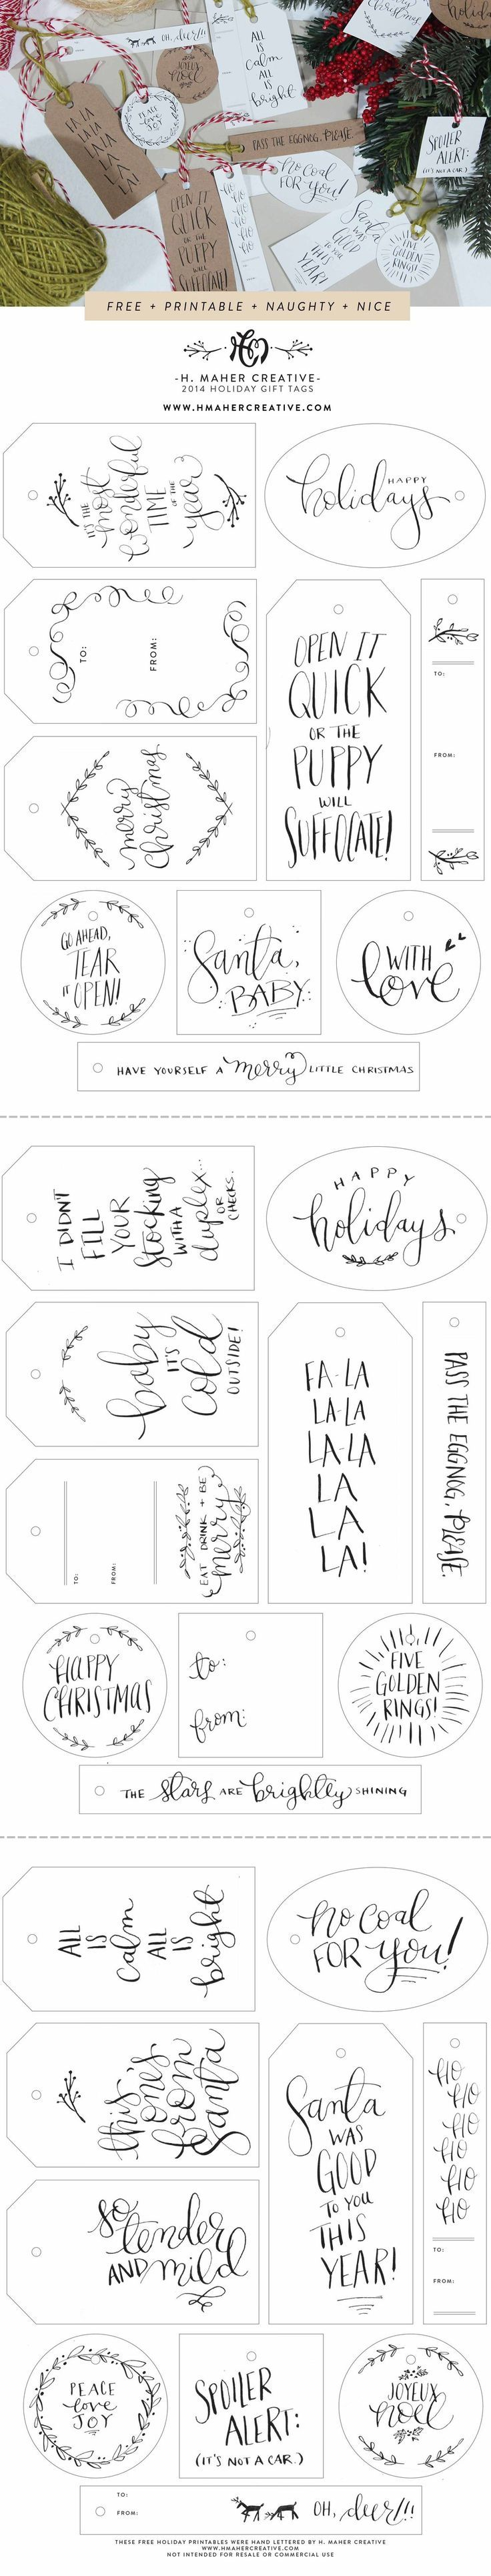 Naughty + Nice // 30 Free Hand-Lettered Holiday Gift Tag Printables from H. Maher Creative (www.hmahercreative.com)  hand lettering // calligraphy // diy // holiday // christmas // gift wrap // hanging tags // funny // cute // illustrated